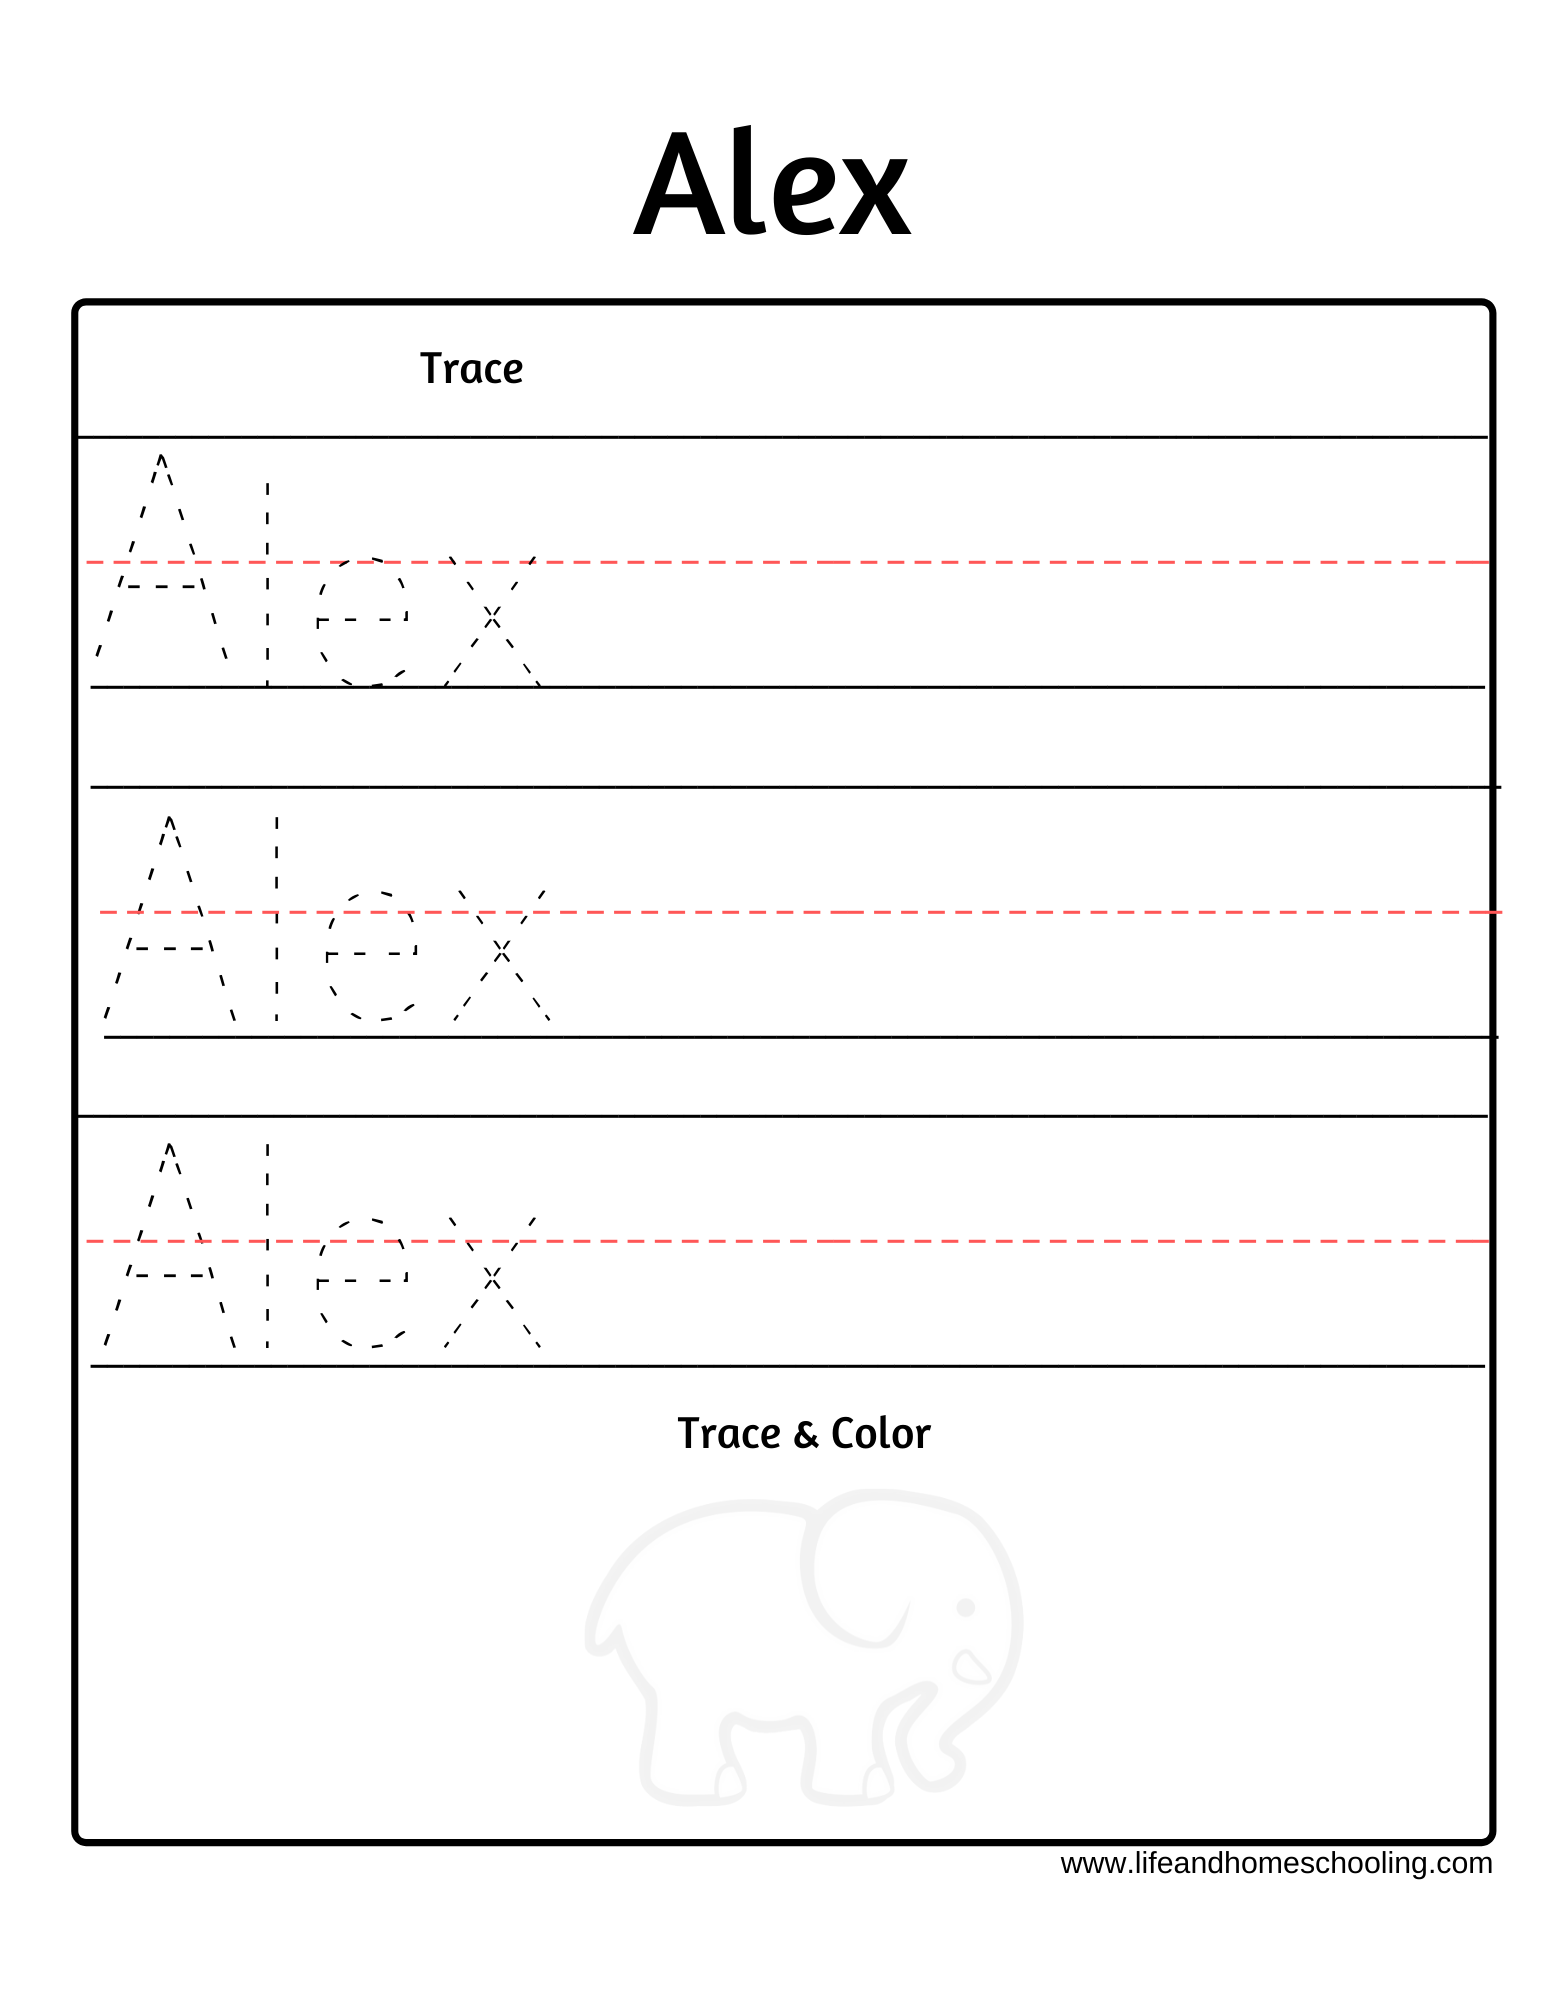 Trace My Name Worksheet In 2020 | Name Tracing Worksheets regarding My Name Is Tracing Worksheet